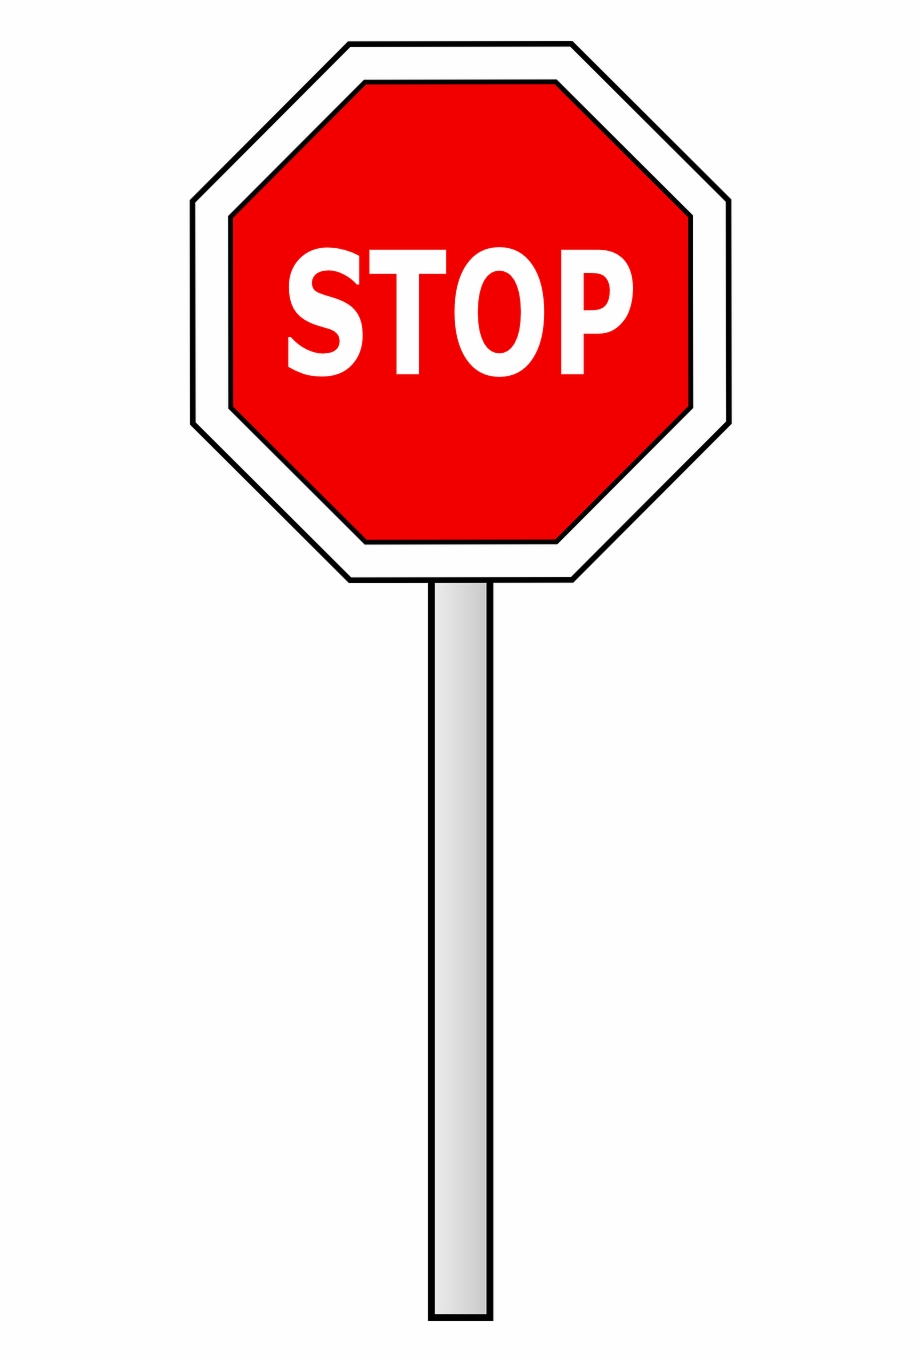 Arrow road stop sign clipart banner library stock Stop Signal Traffic Road Street Png Image - Stop Sign Clipart Png ... banner library stock